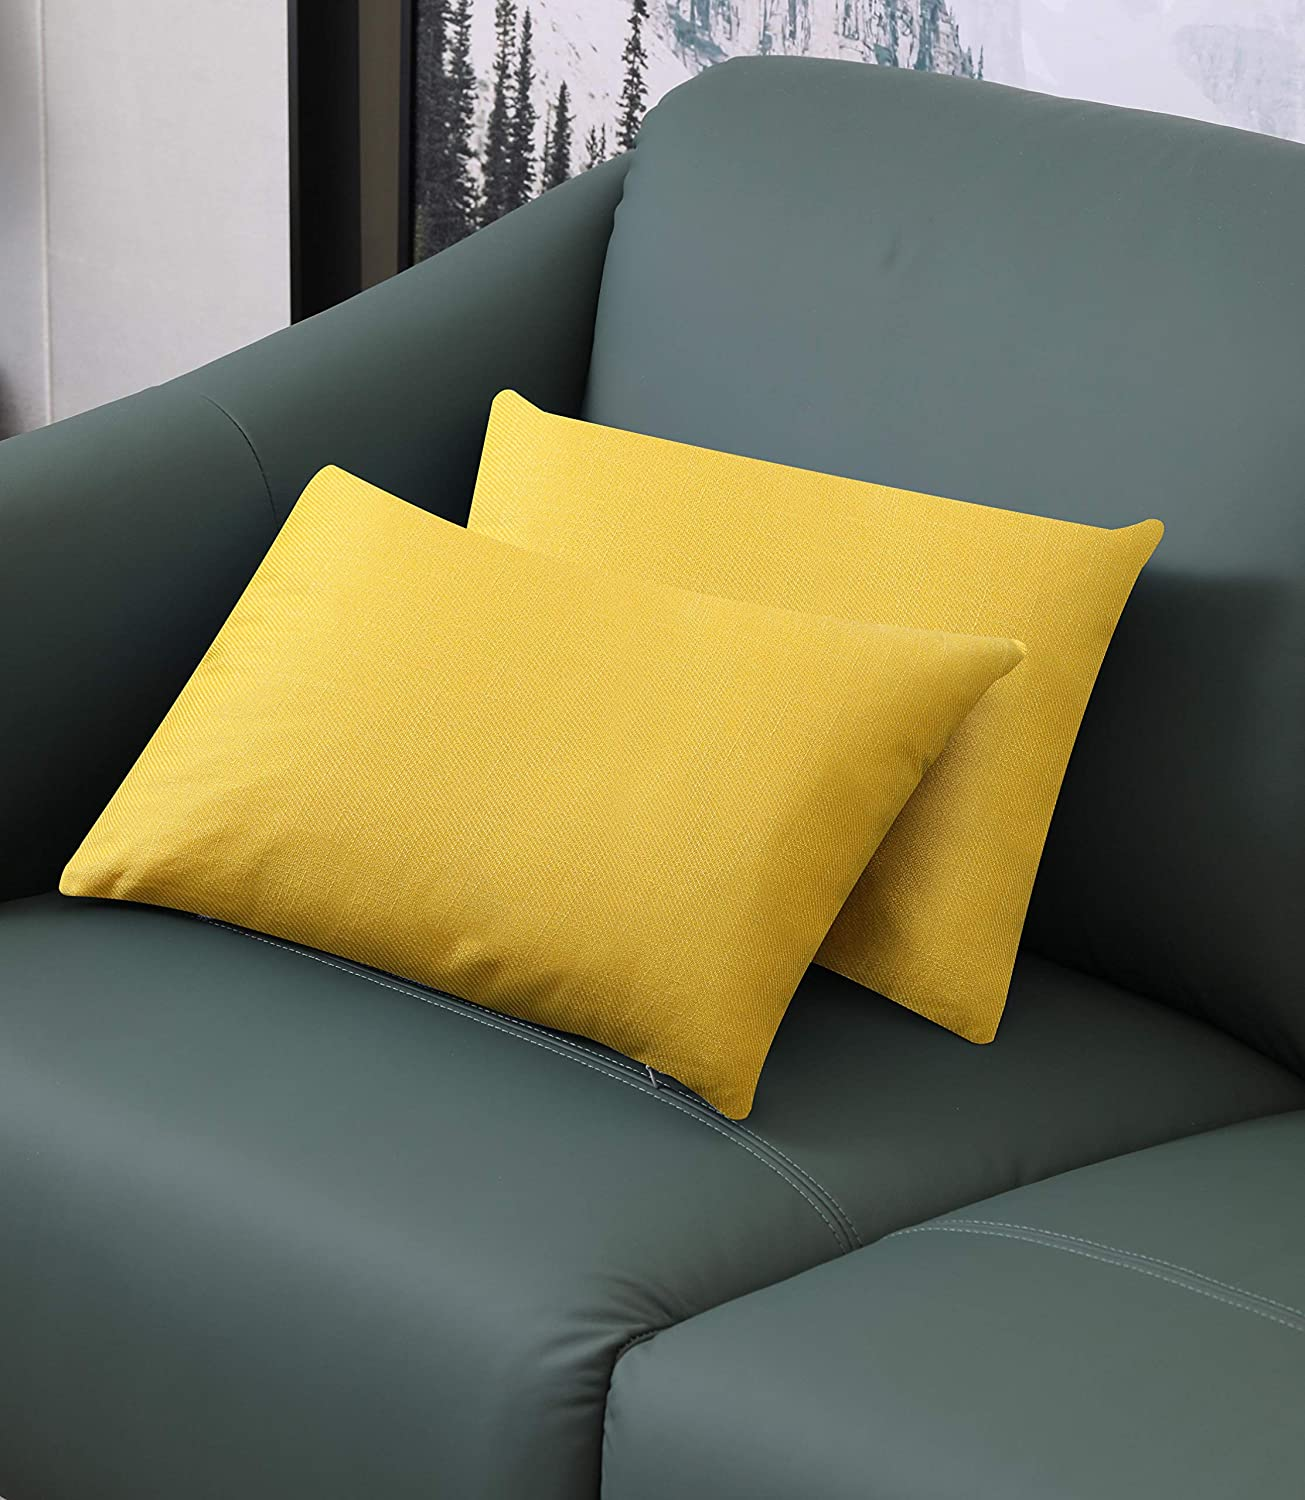 ZLINA Yellow Linen Lumbar Pillow Covers Set of 2 Cushion Covers Pillowcase Home Decor for Sofa Couch Bed Chair Car Farmhouse 12x20 Inch